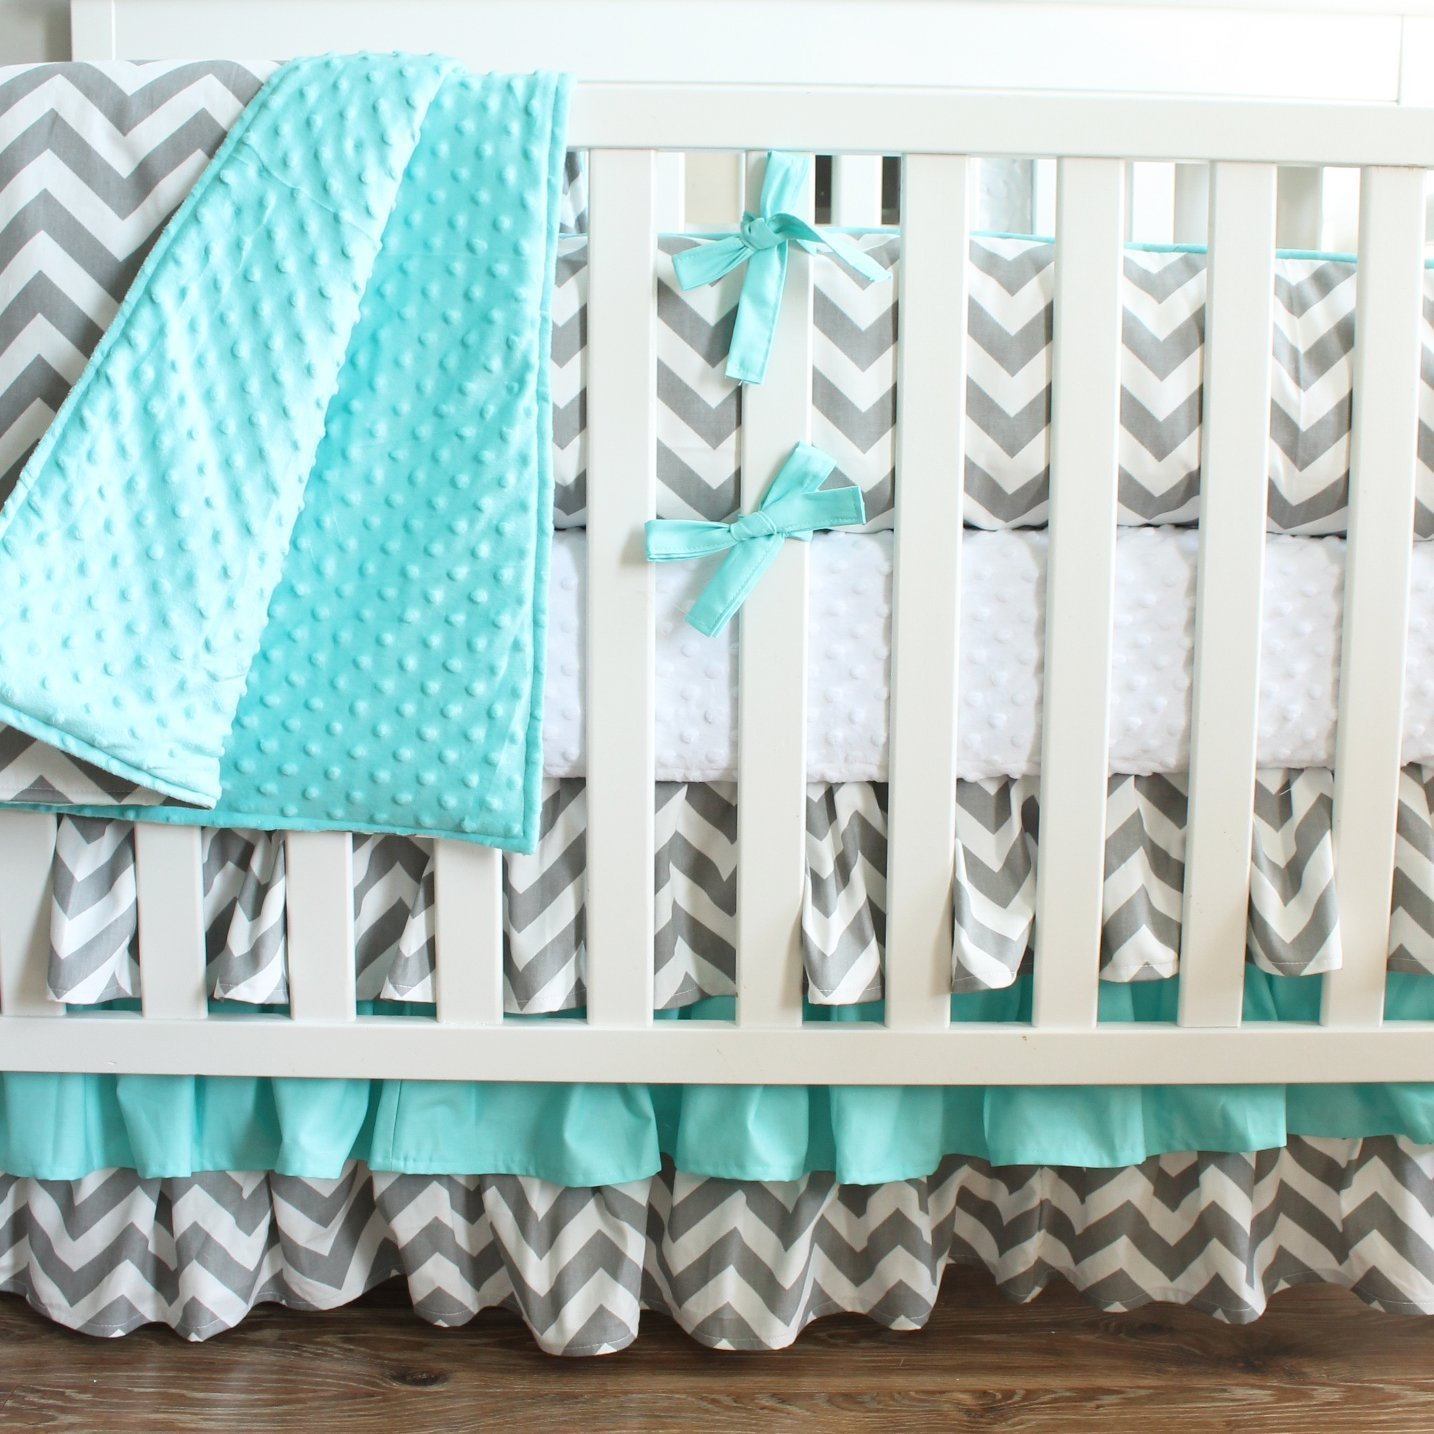 Gray Aqua Chevron Crib Baby Bedding-3 Tiered Crib Skirt